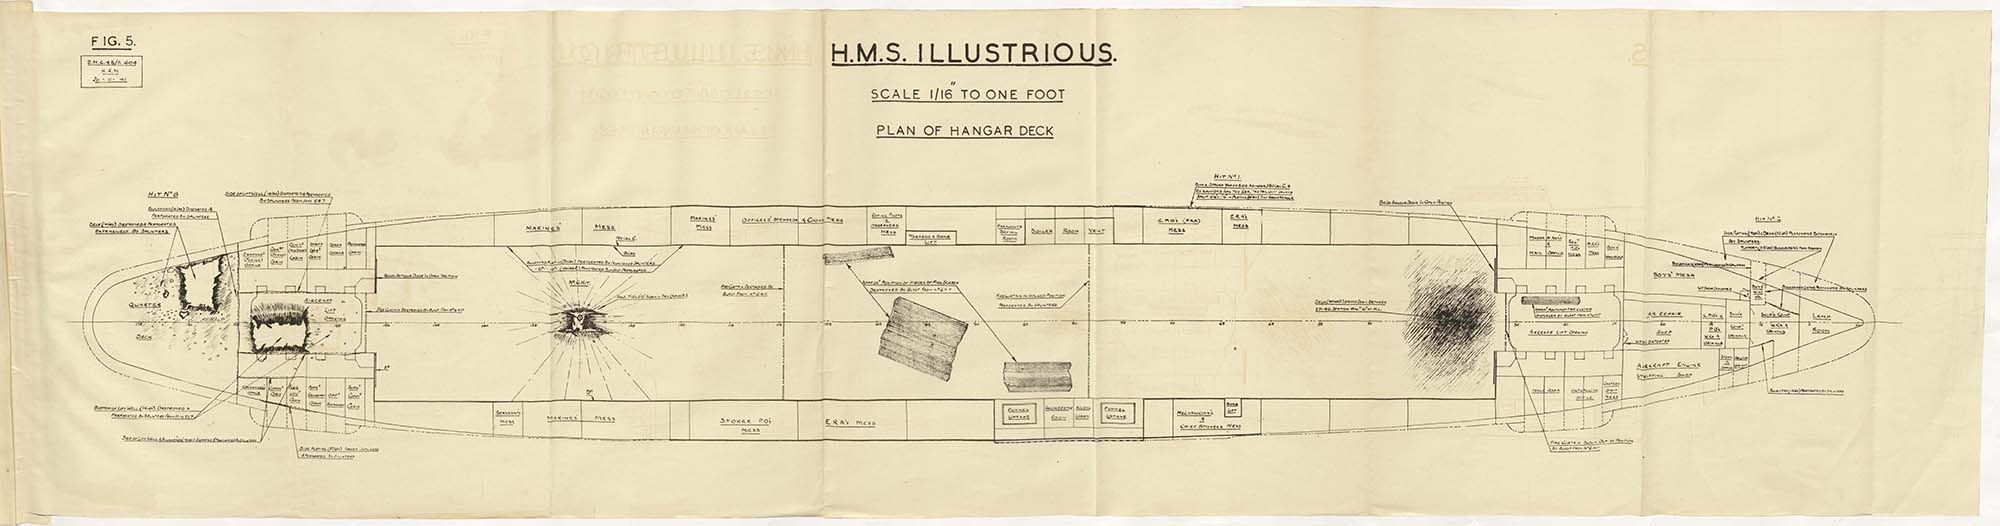 The hangar deck damage diagram in the British National Archive. Click on the image for a larger version to display.